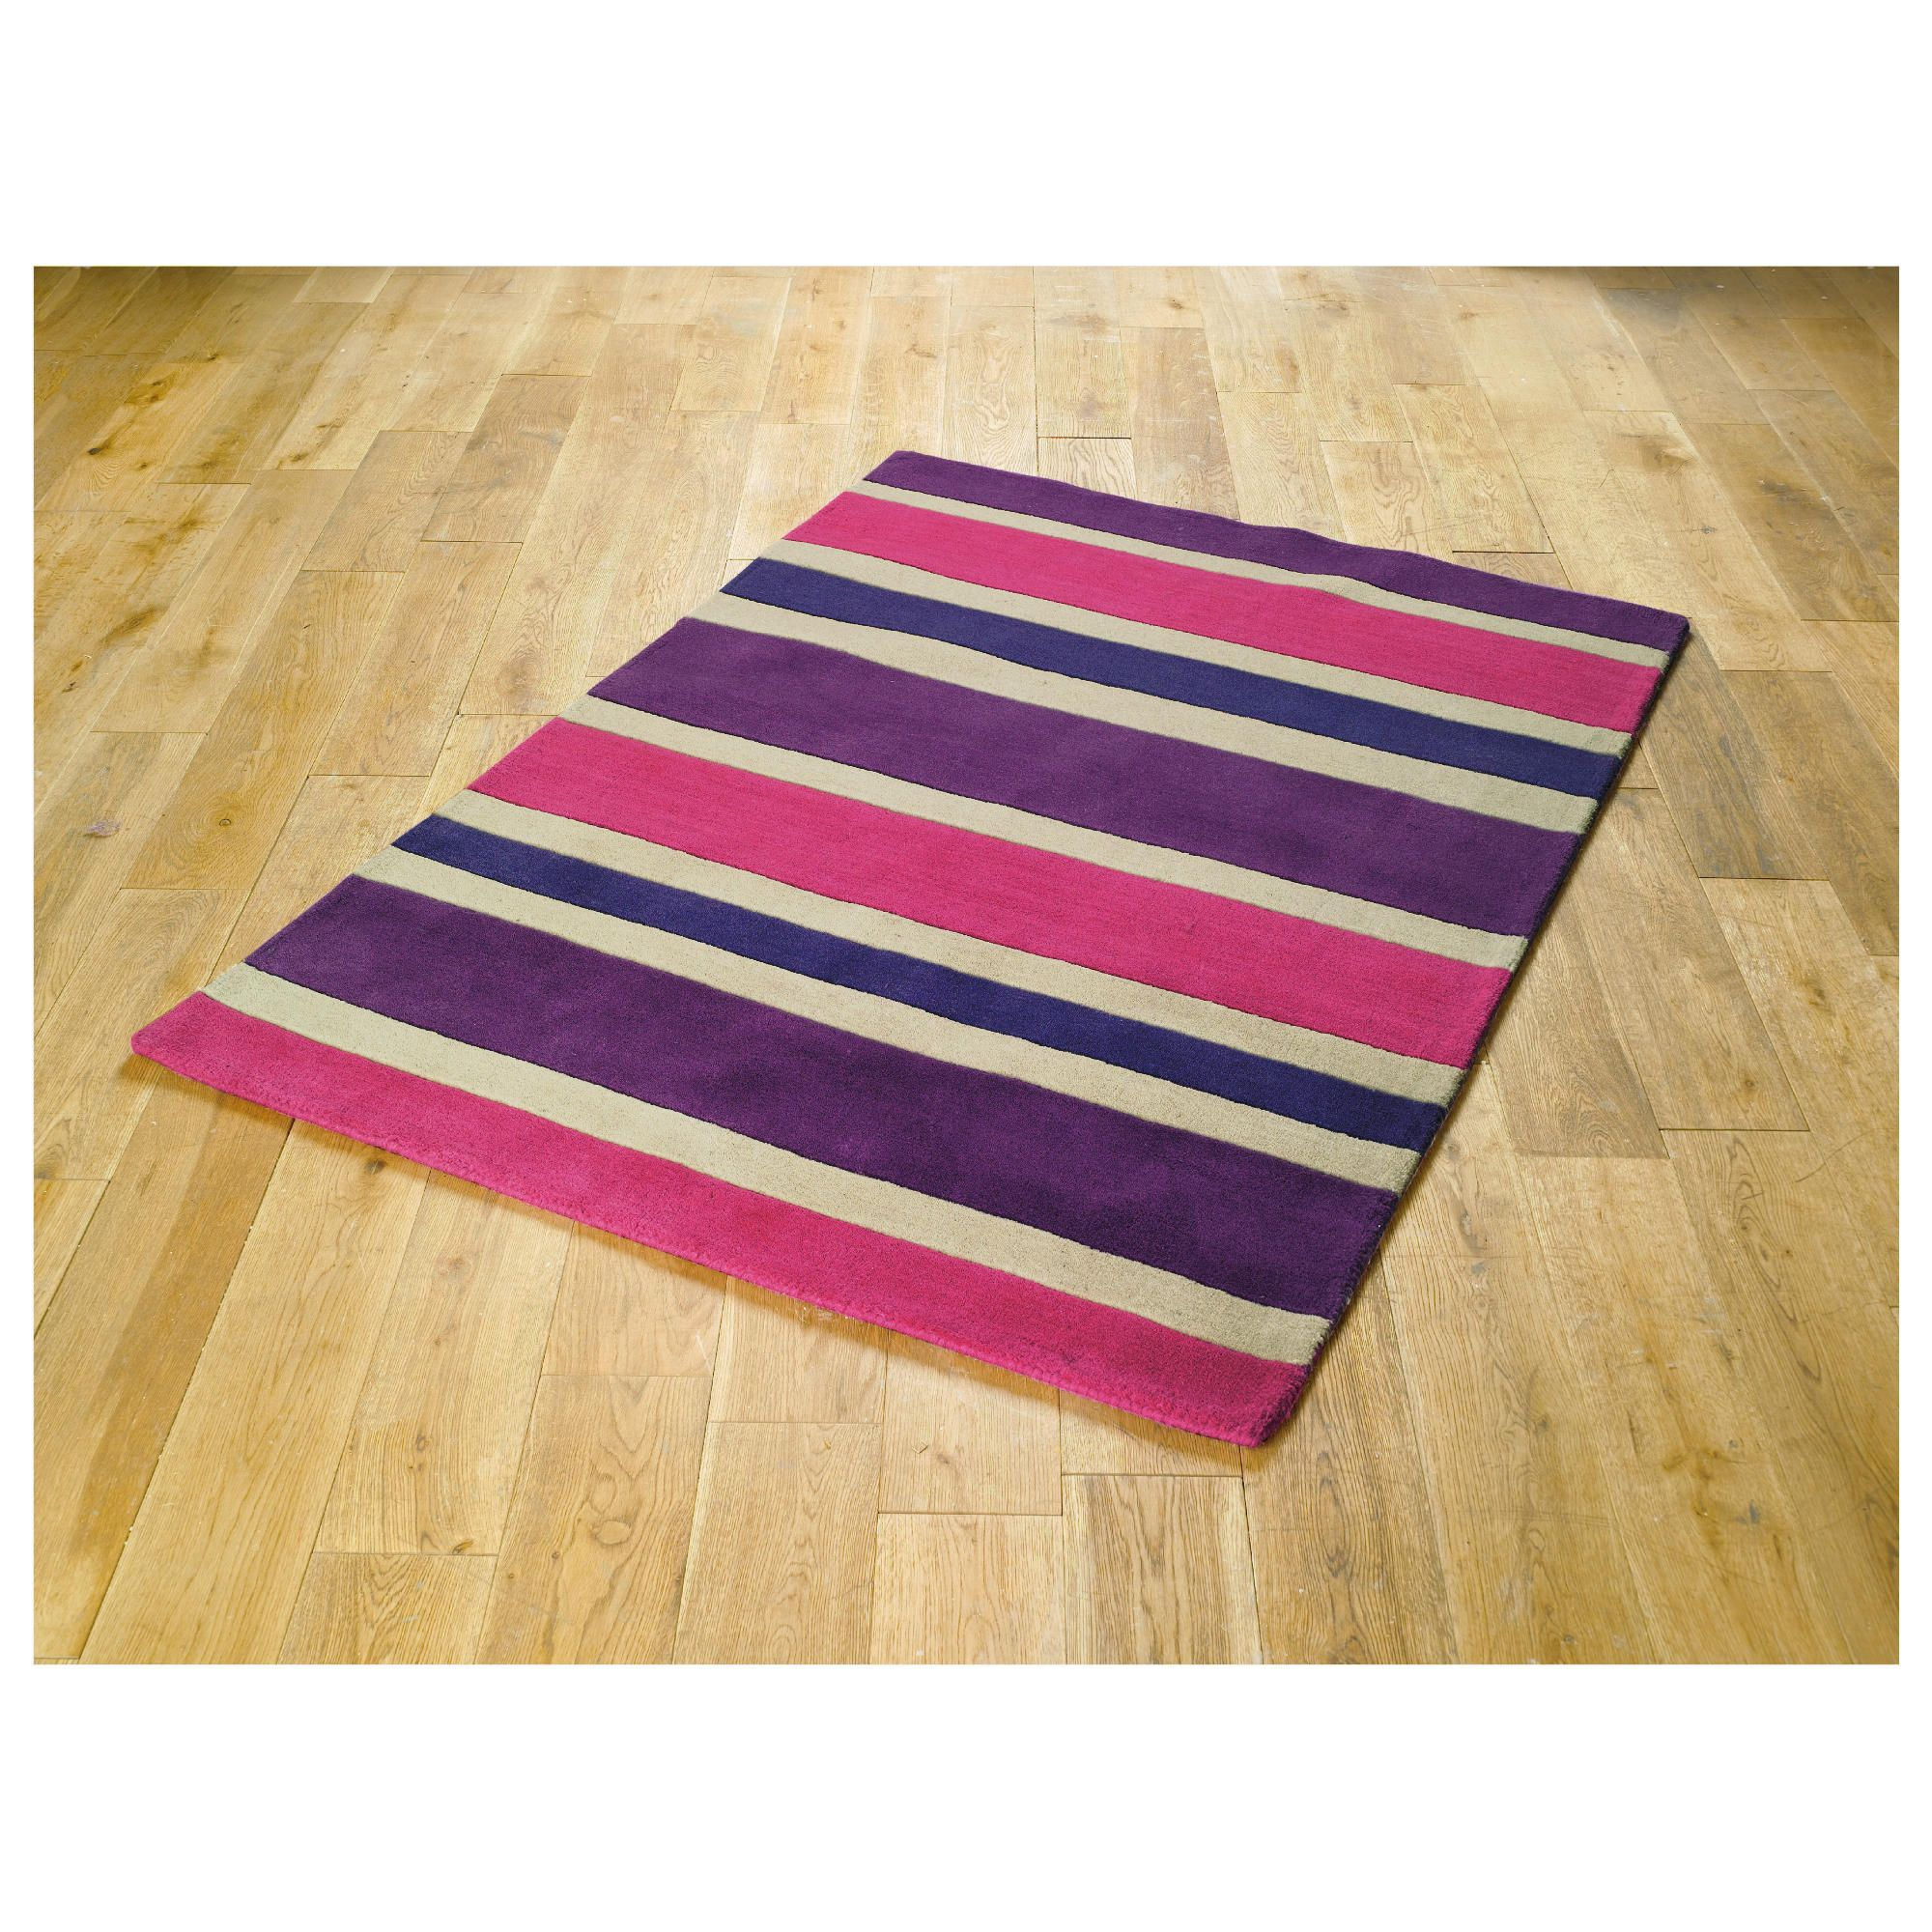 Tesco rugs stripe rug plum 120x170cm thousands of rugs for Plum and cream rug